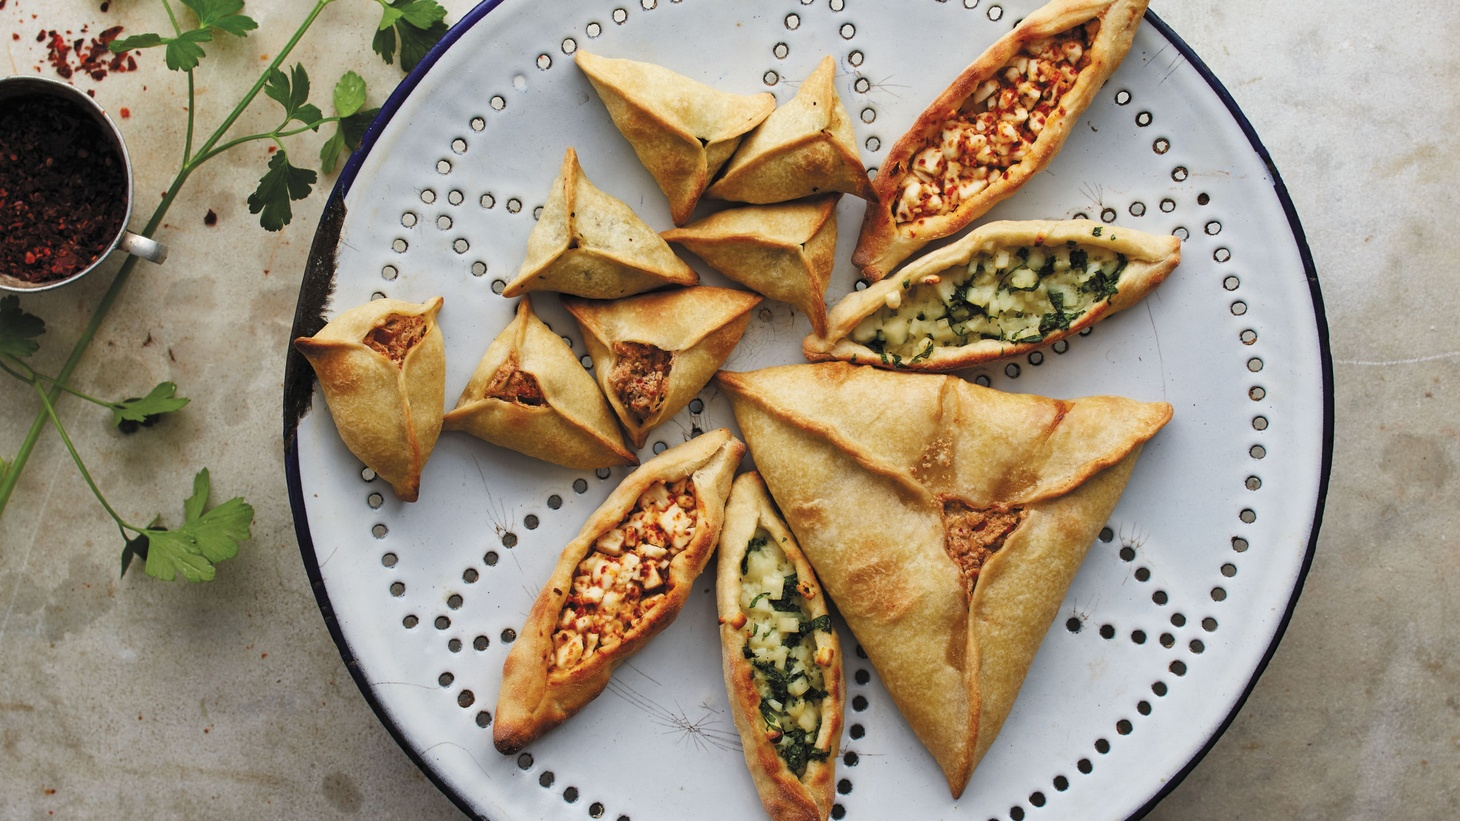 Lebanese Fatayer from 'Feast' by Anissa Helou.